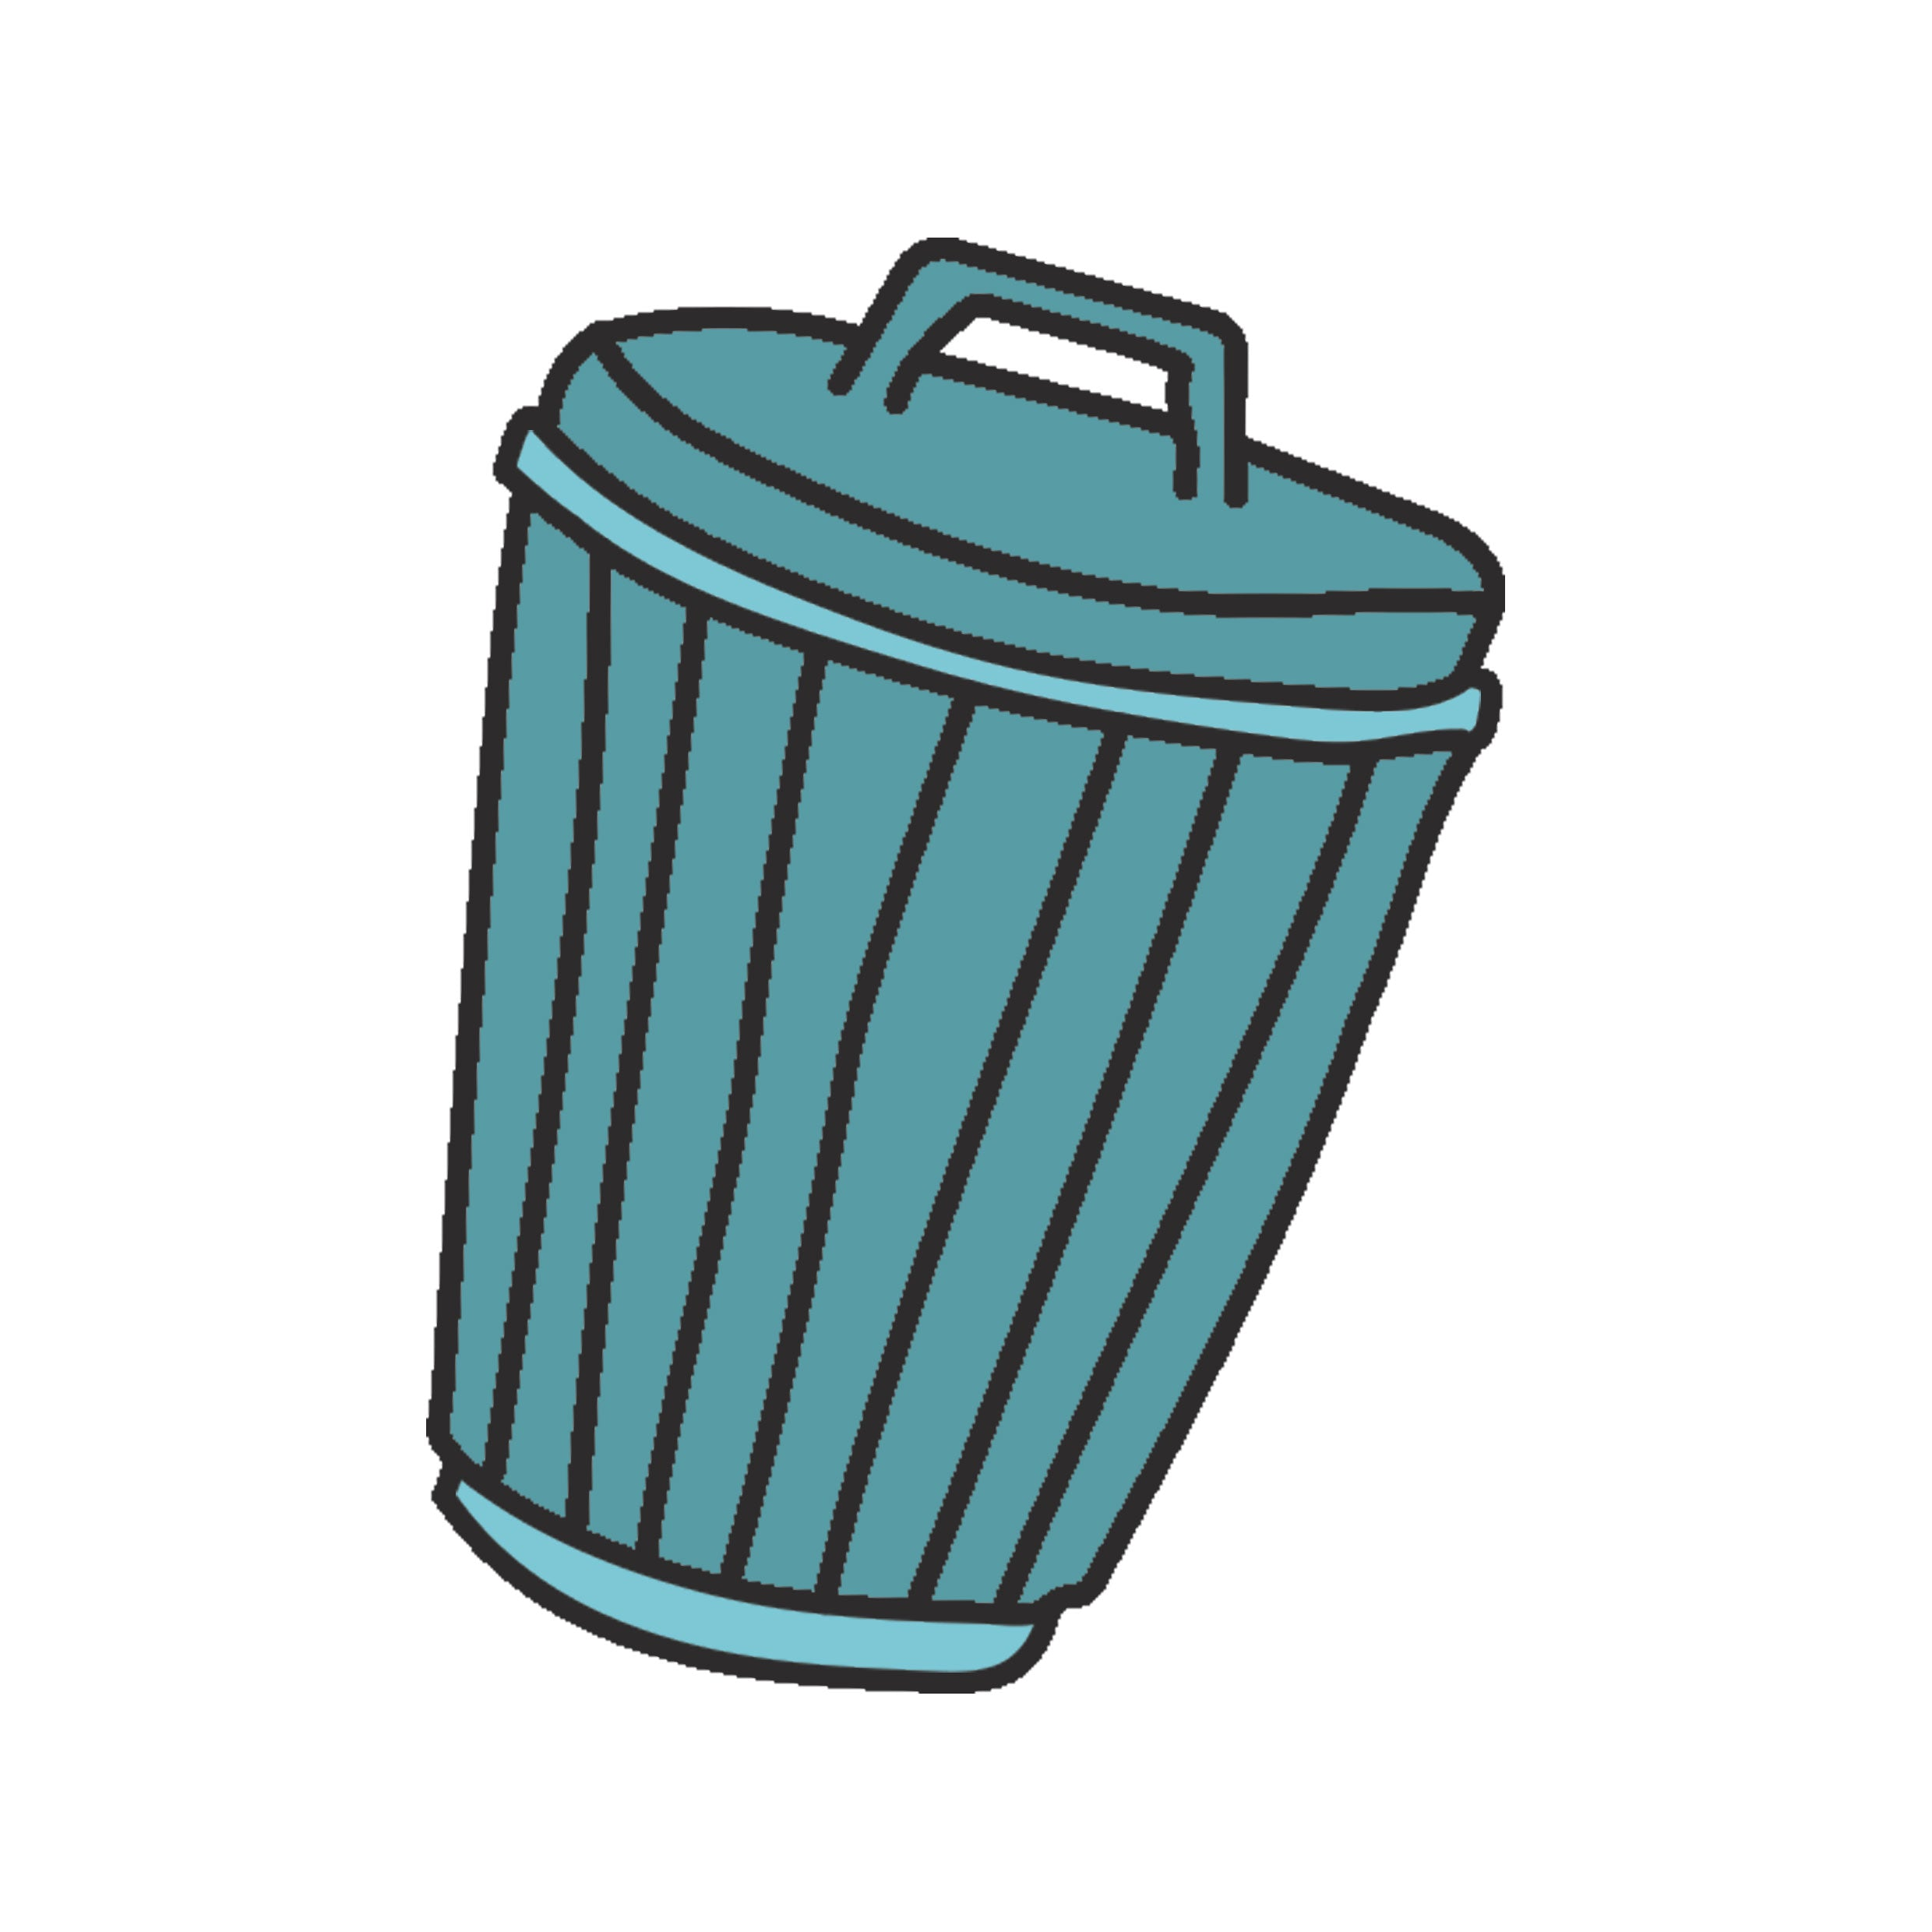 Garbage Can Candy Illustration